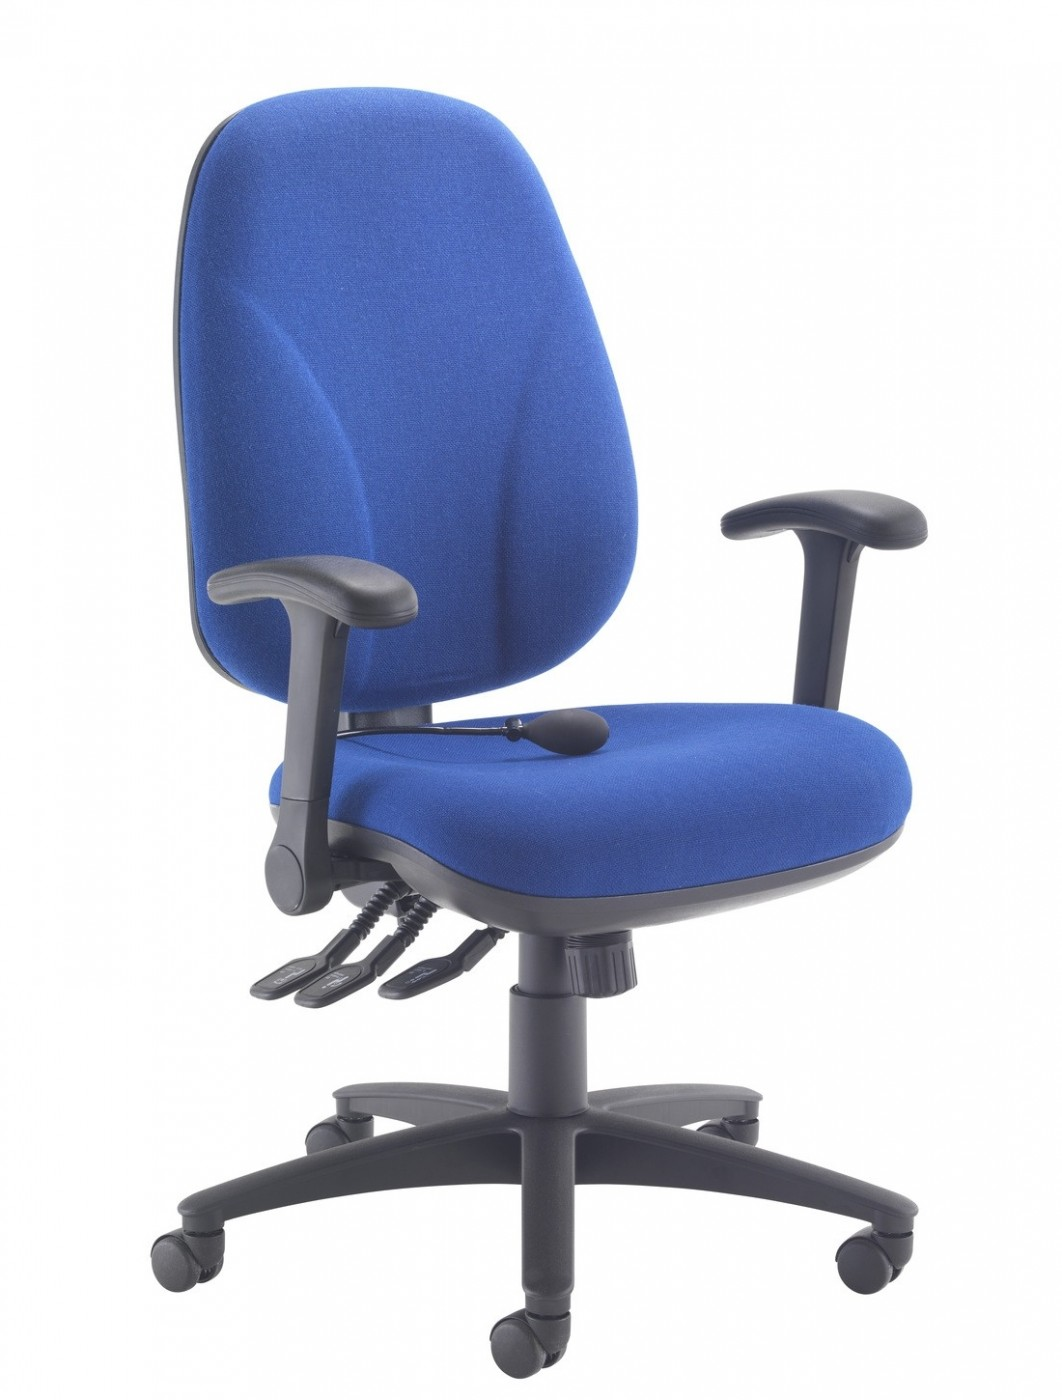 tc office concept maxi ergo office chair ch0808 in blue. Black Bedroom Furniture Sets. Home Design Ideas